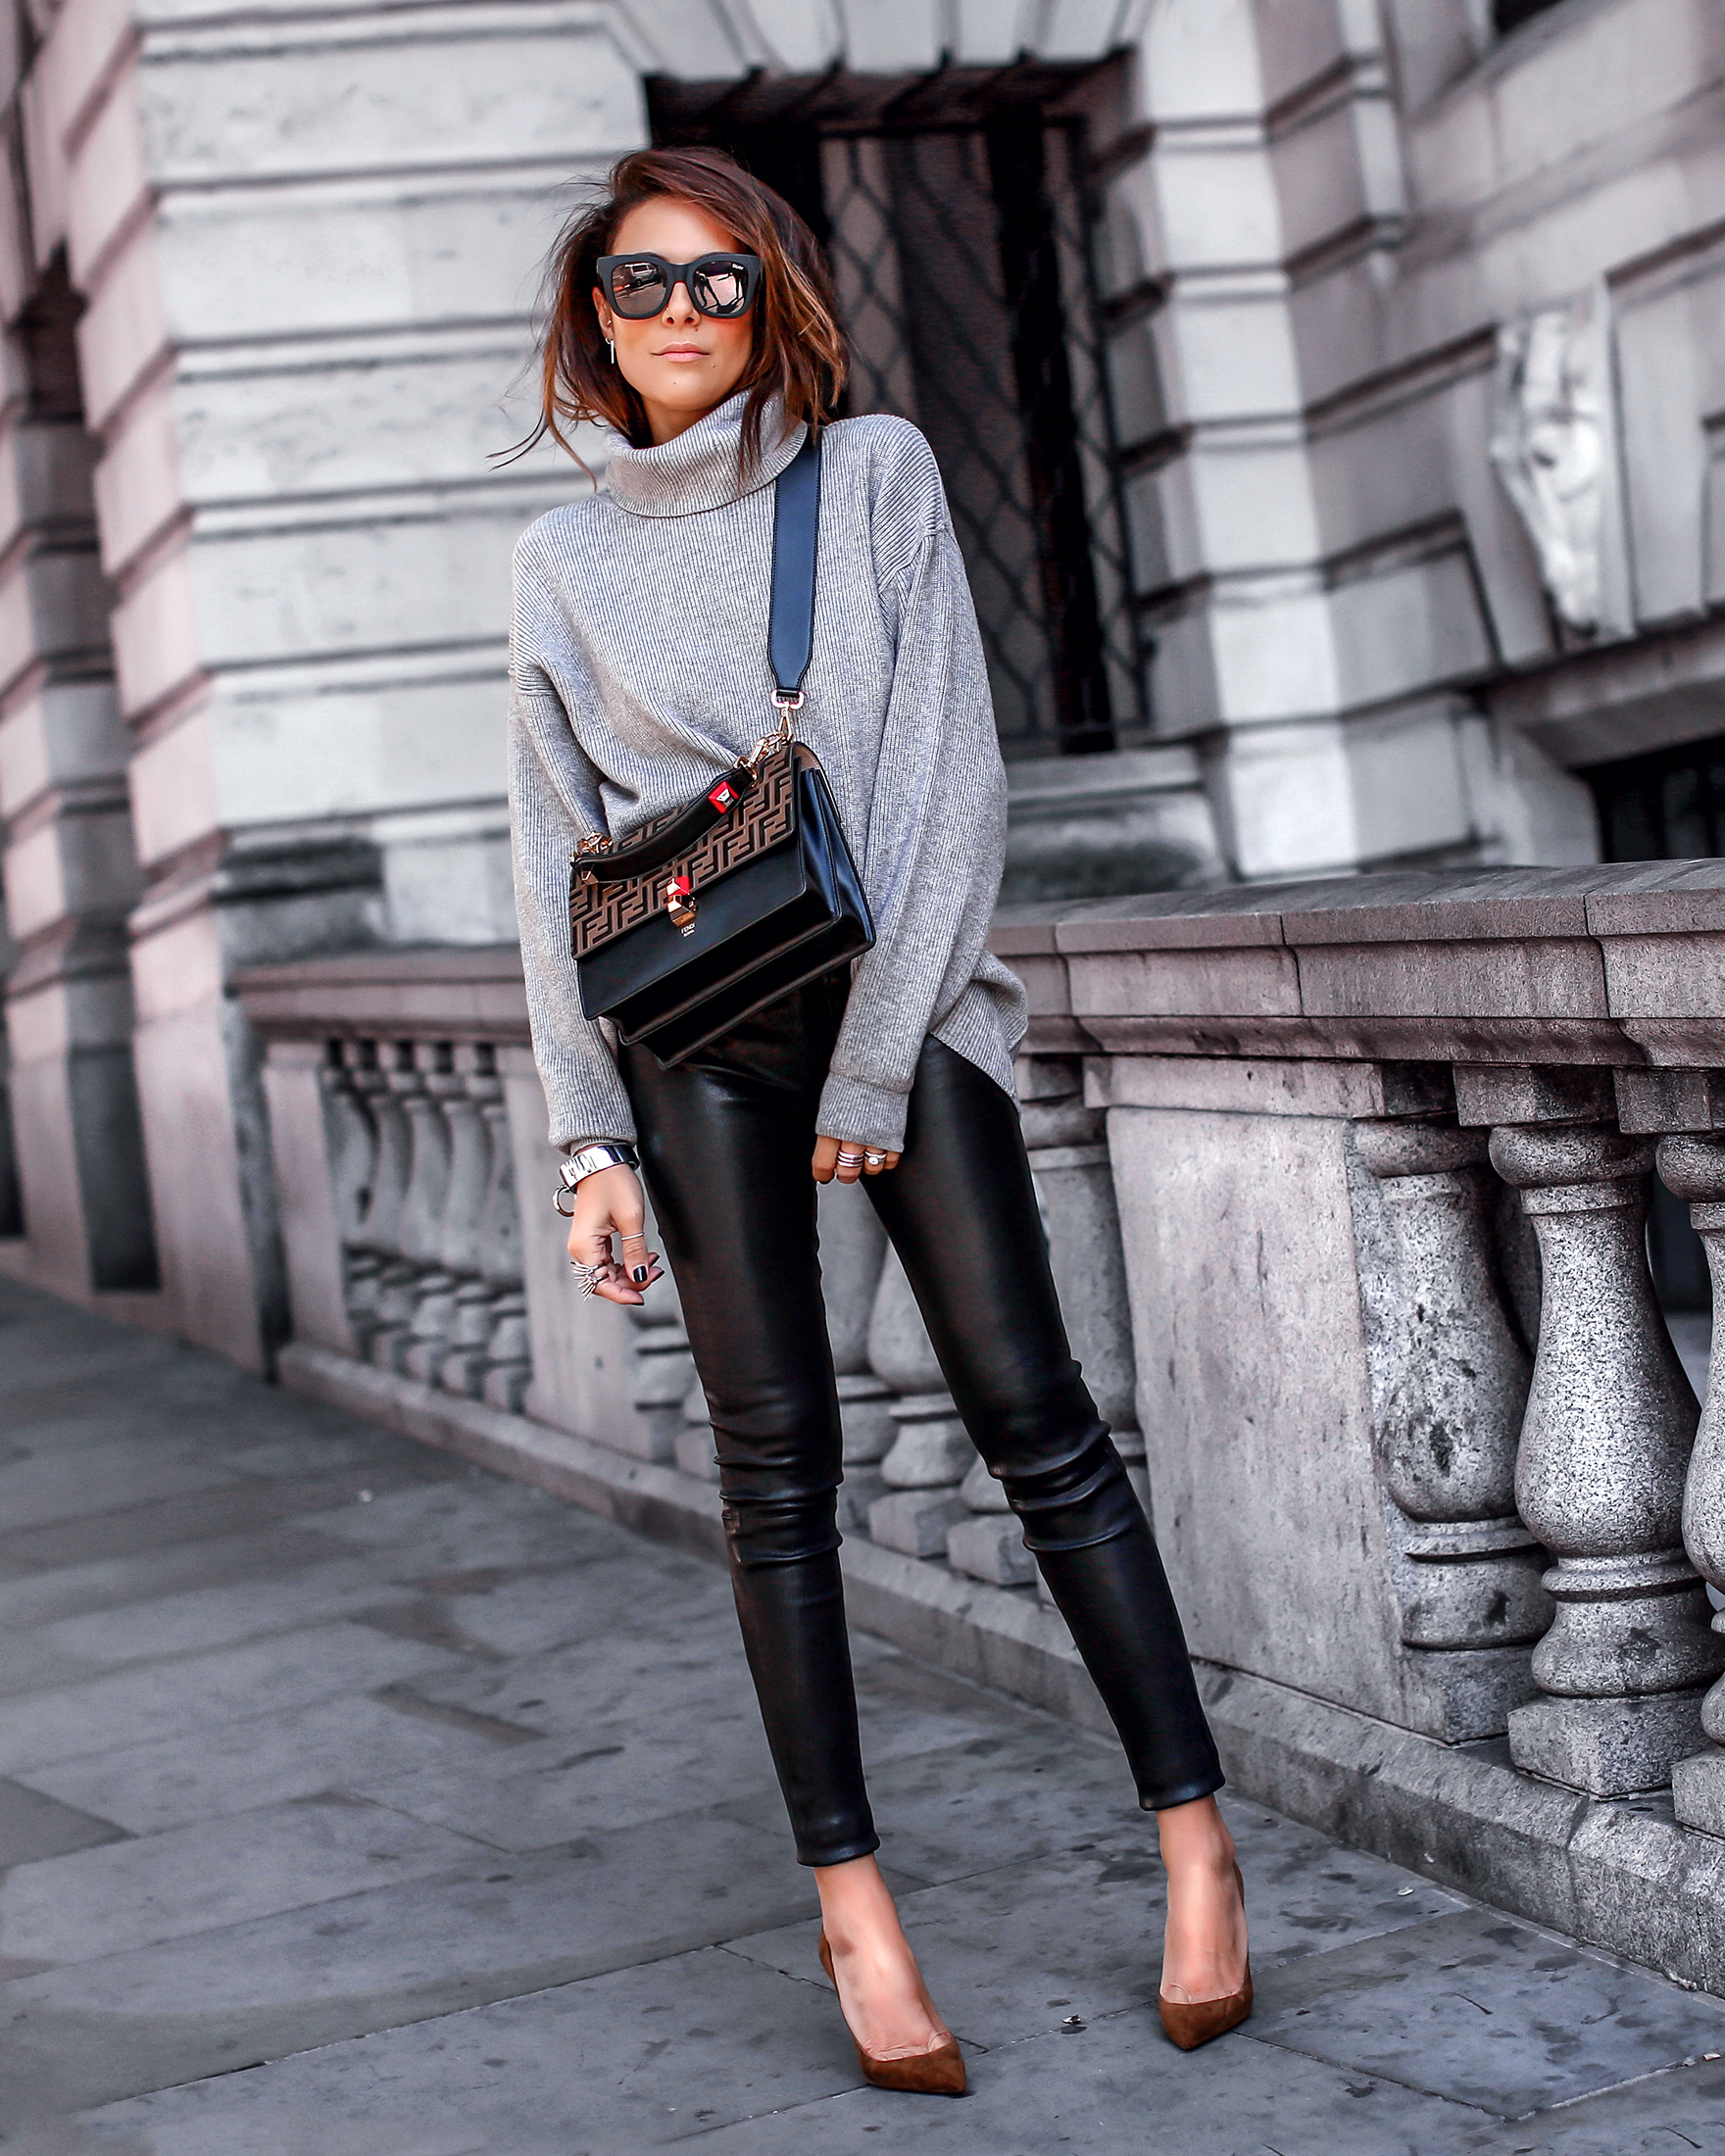 Brunette Woman In London Wearing Leather Pants and Free People Sweater Fendi Kan Bag